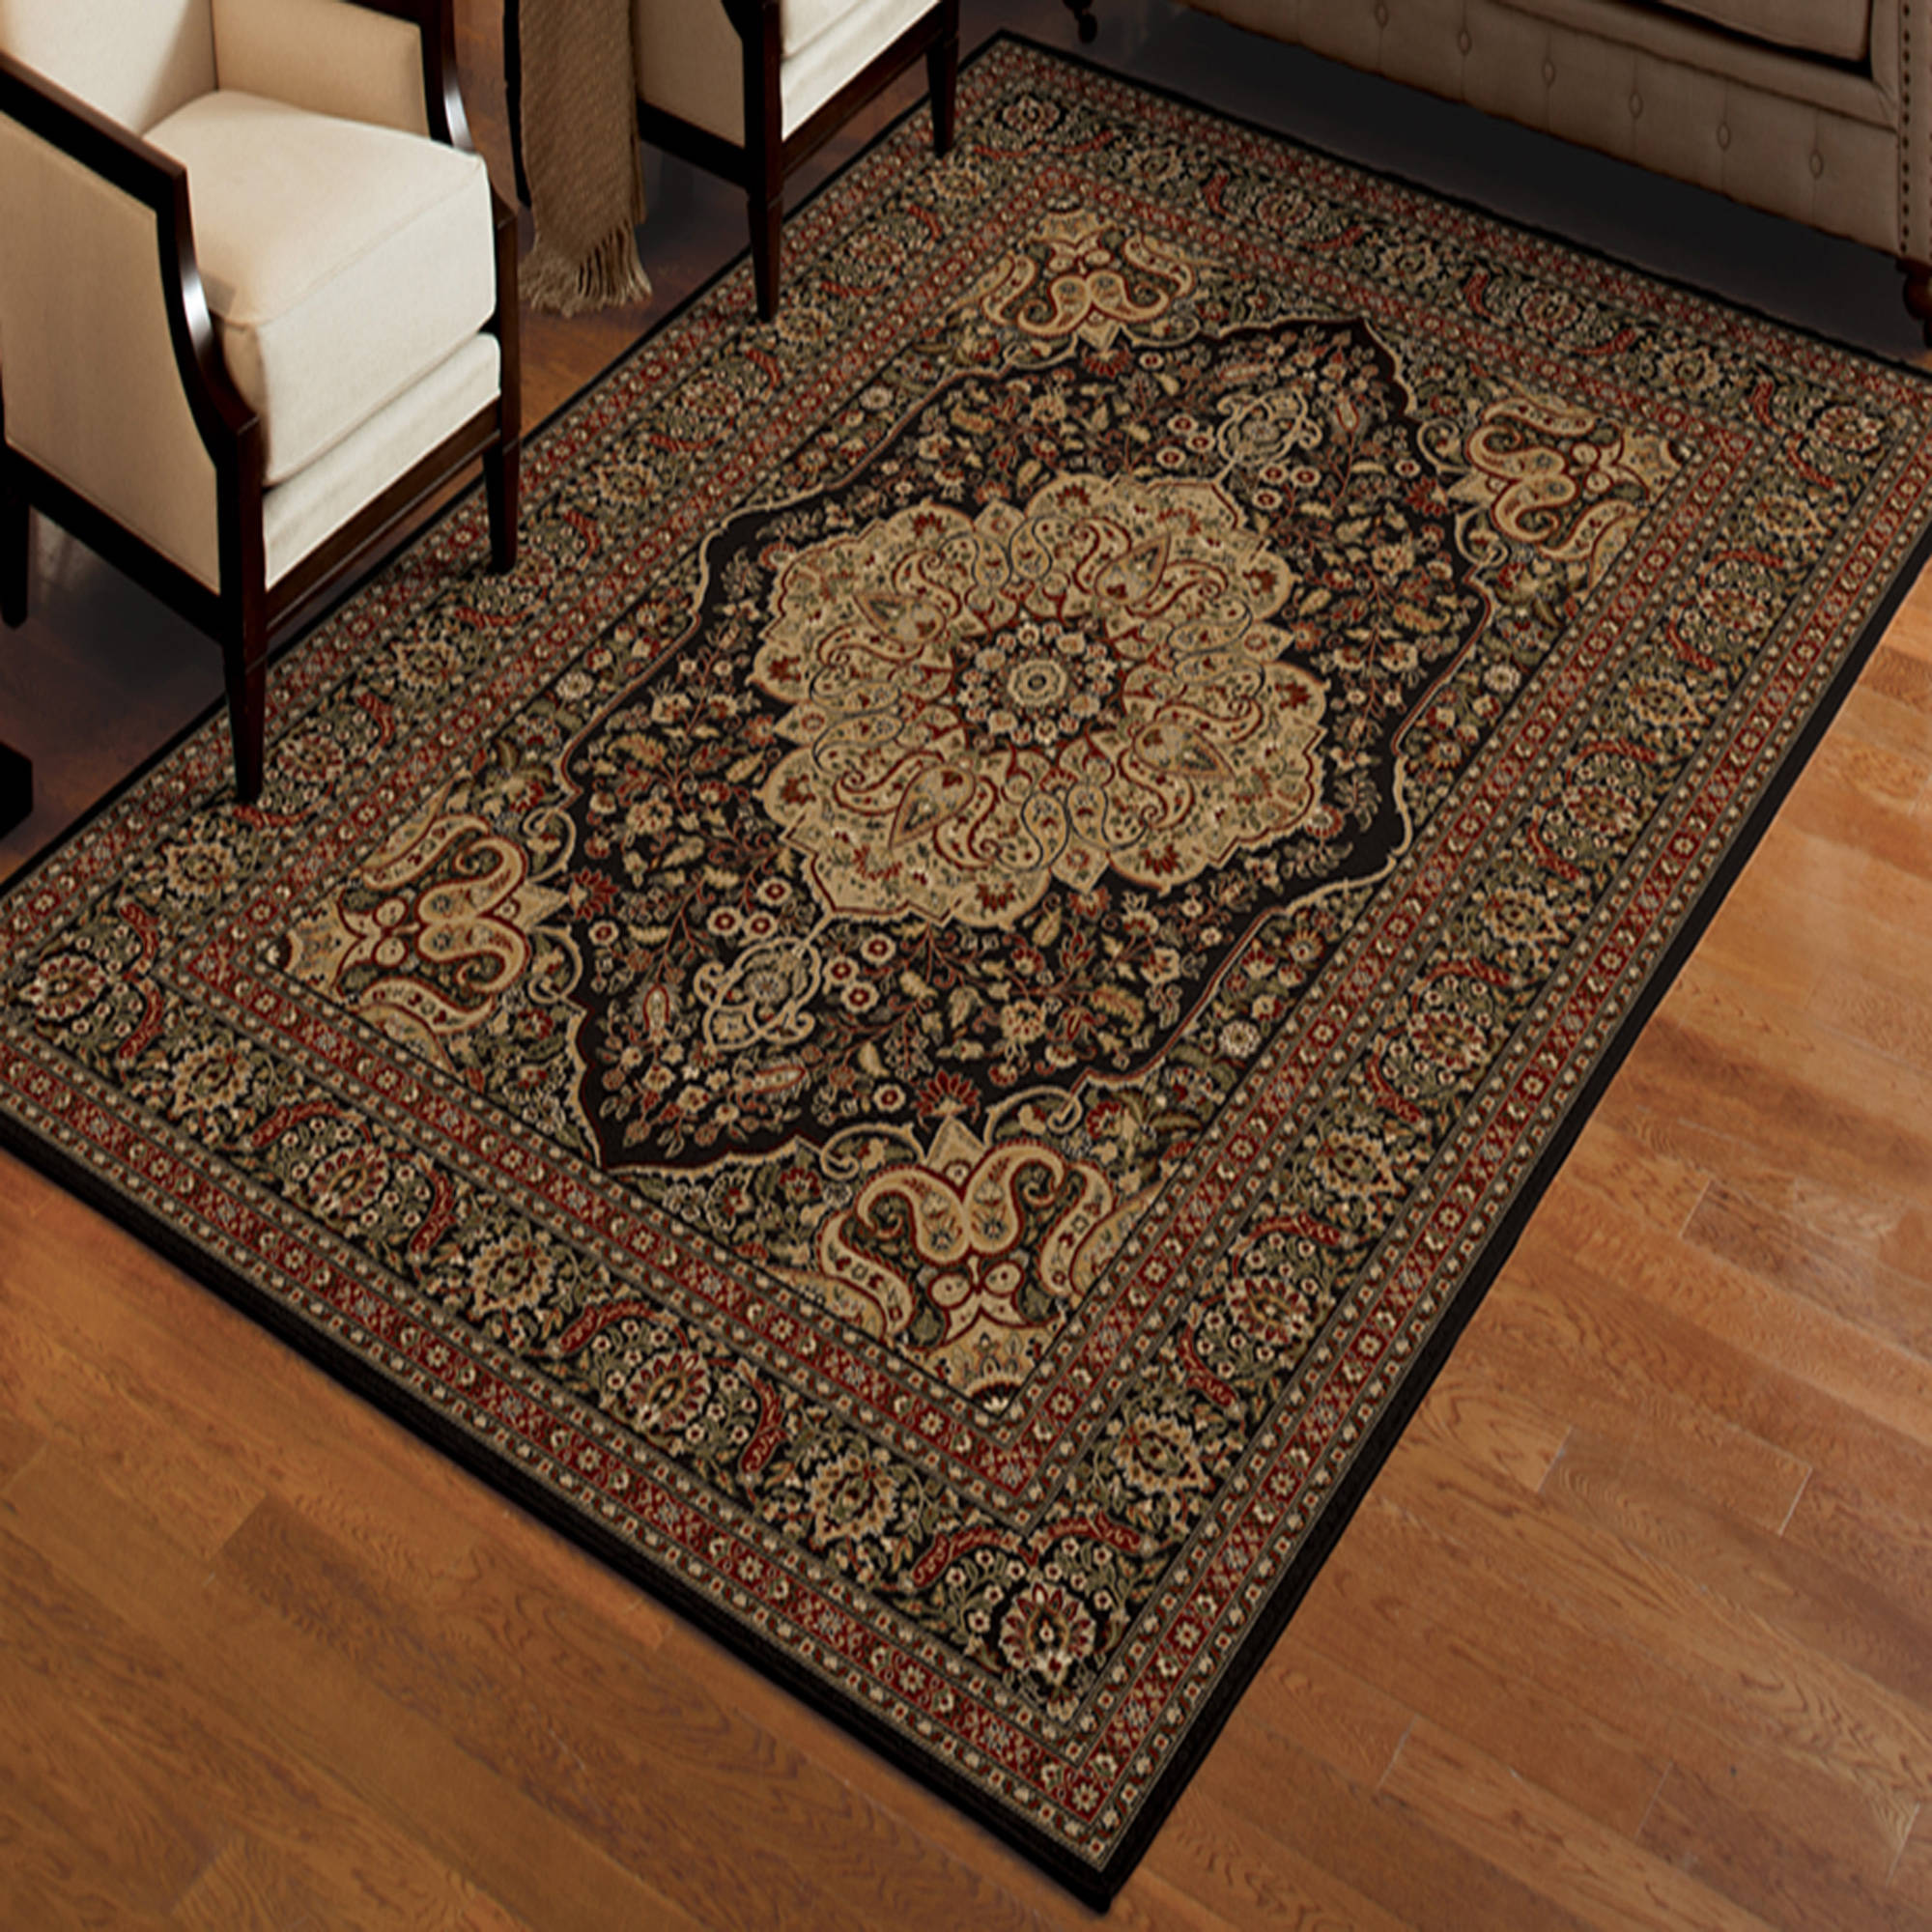 reviews x rug taupe studio pdx rugs wayfair boice area wrought